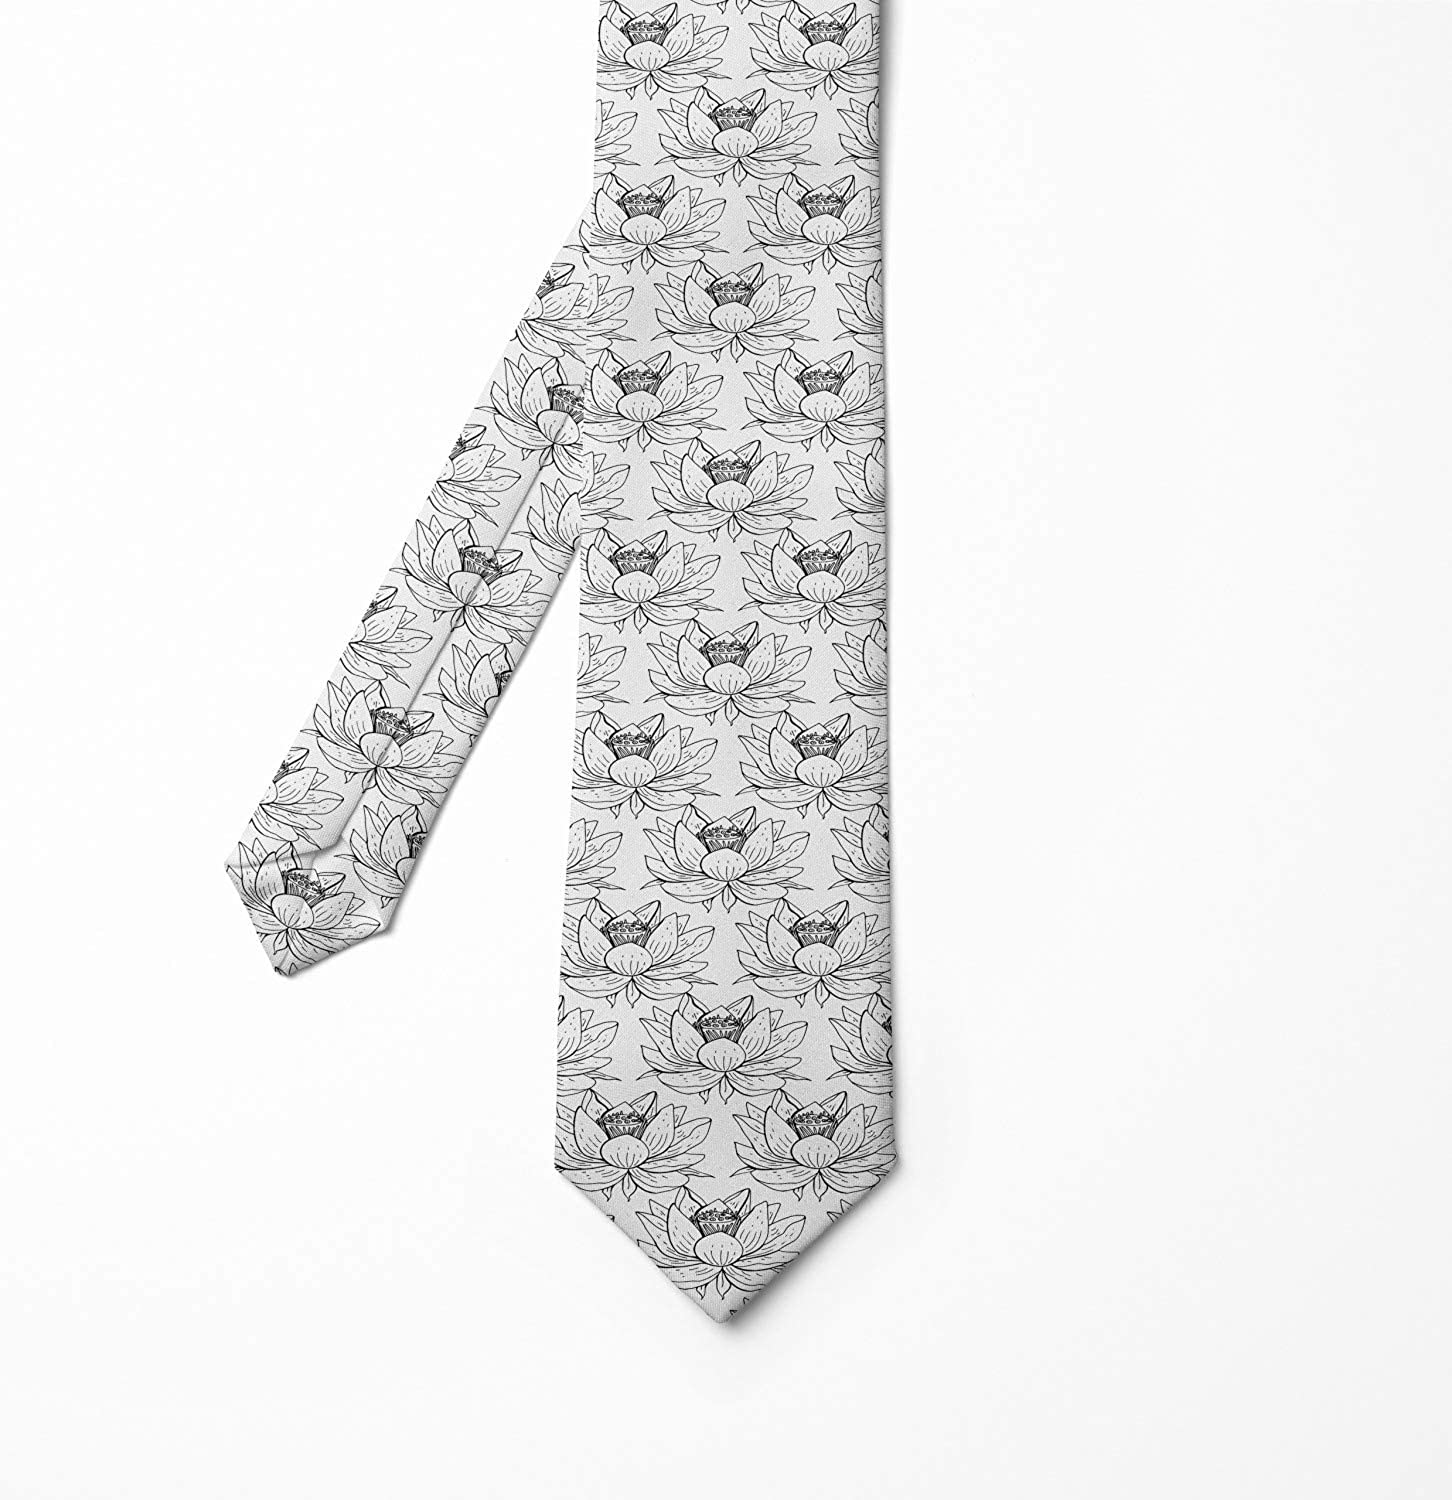 Charcoal Grey and White Ambesonne Floral Mens Tie 3.7 Outline Drawings of Hand Drawn Lotus Flowers on a Plain Background